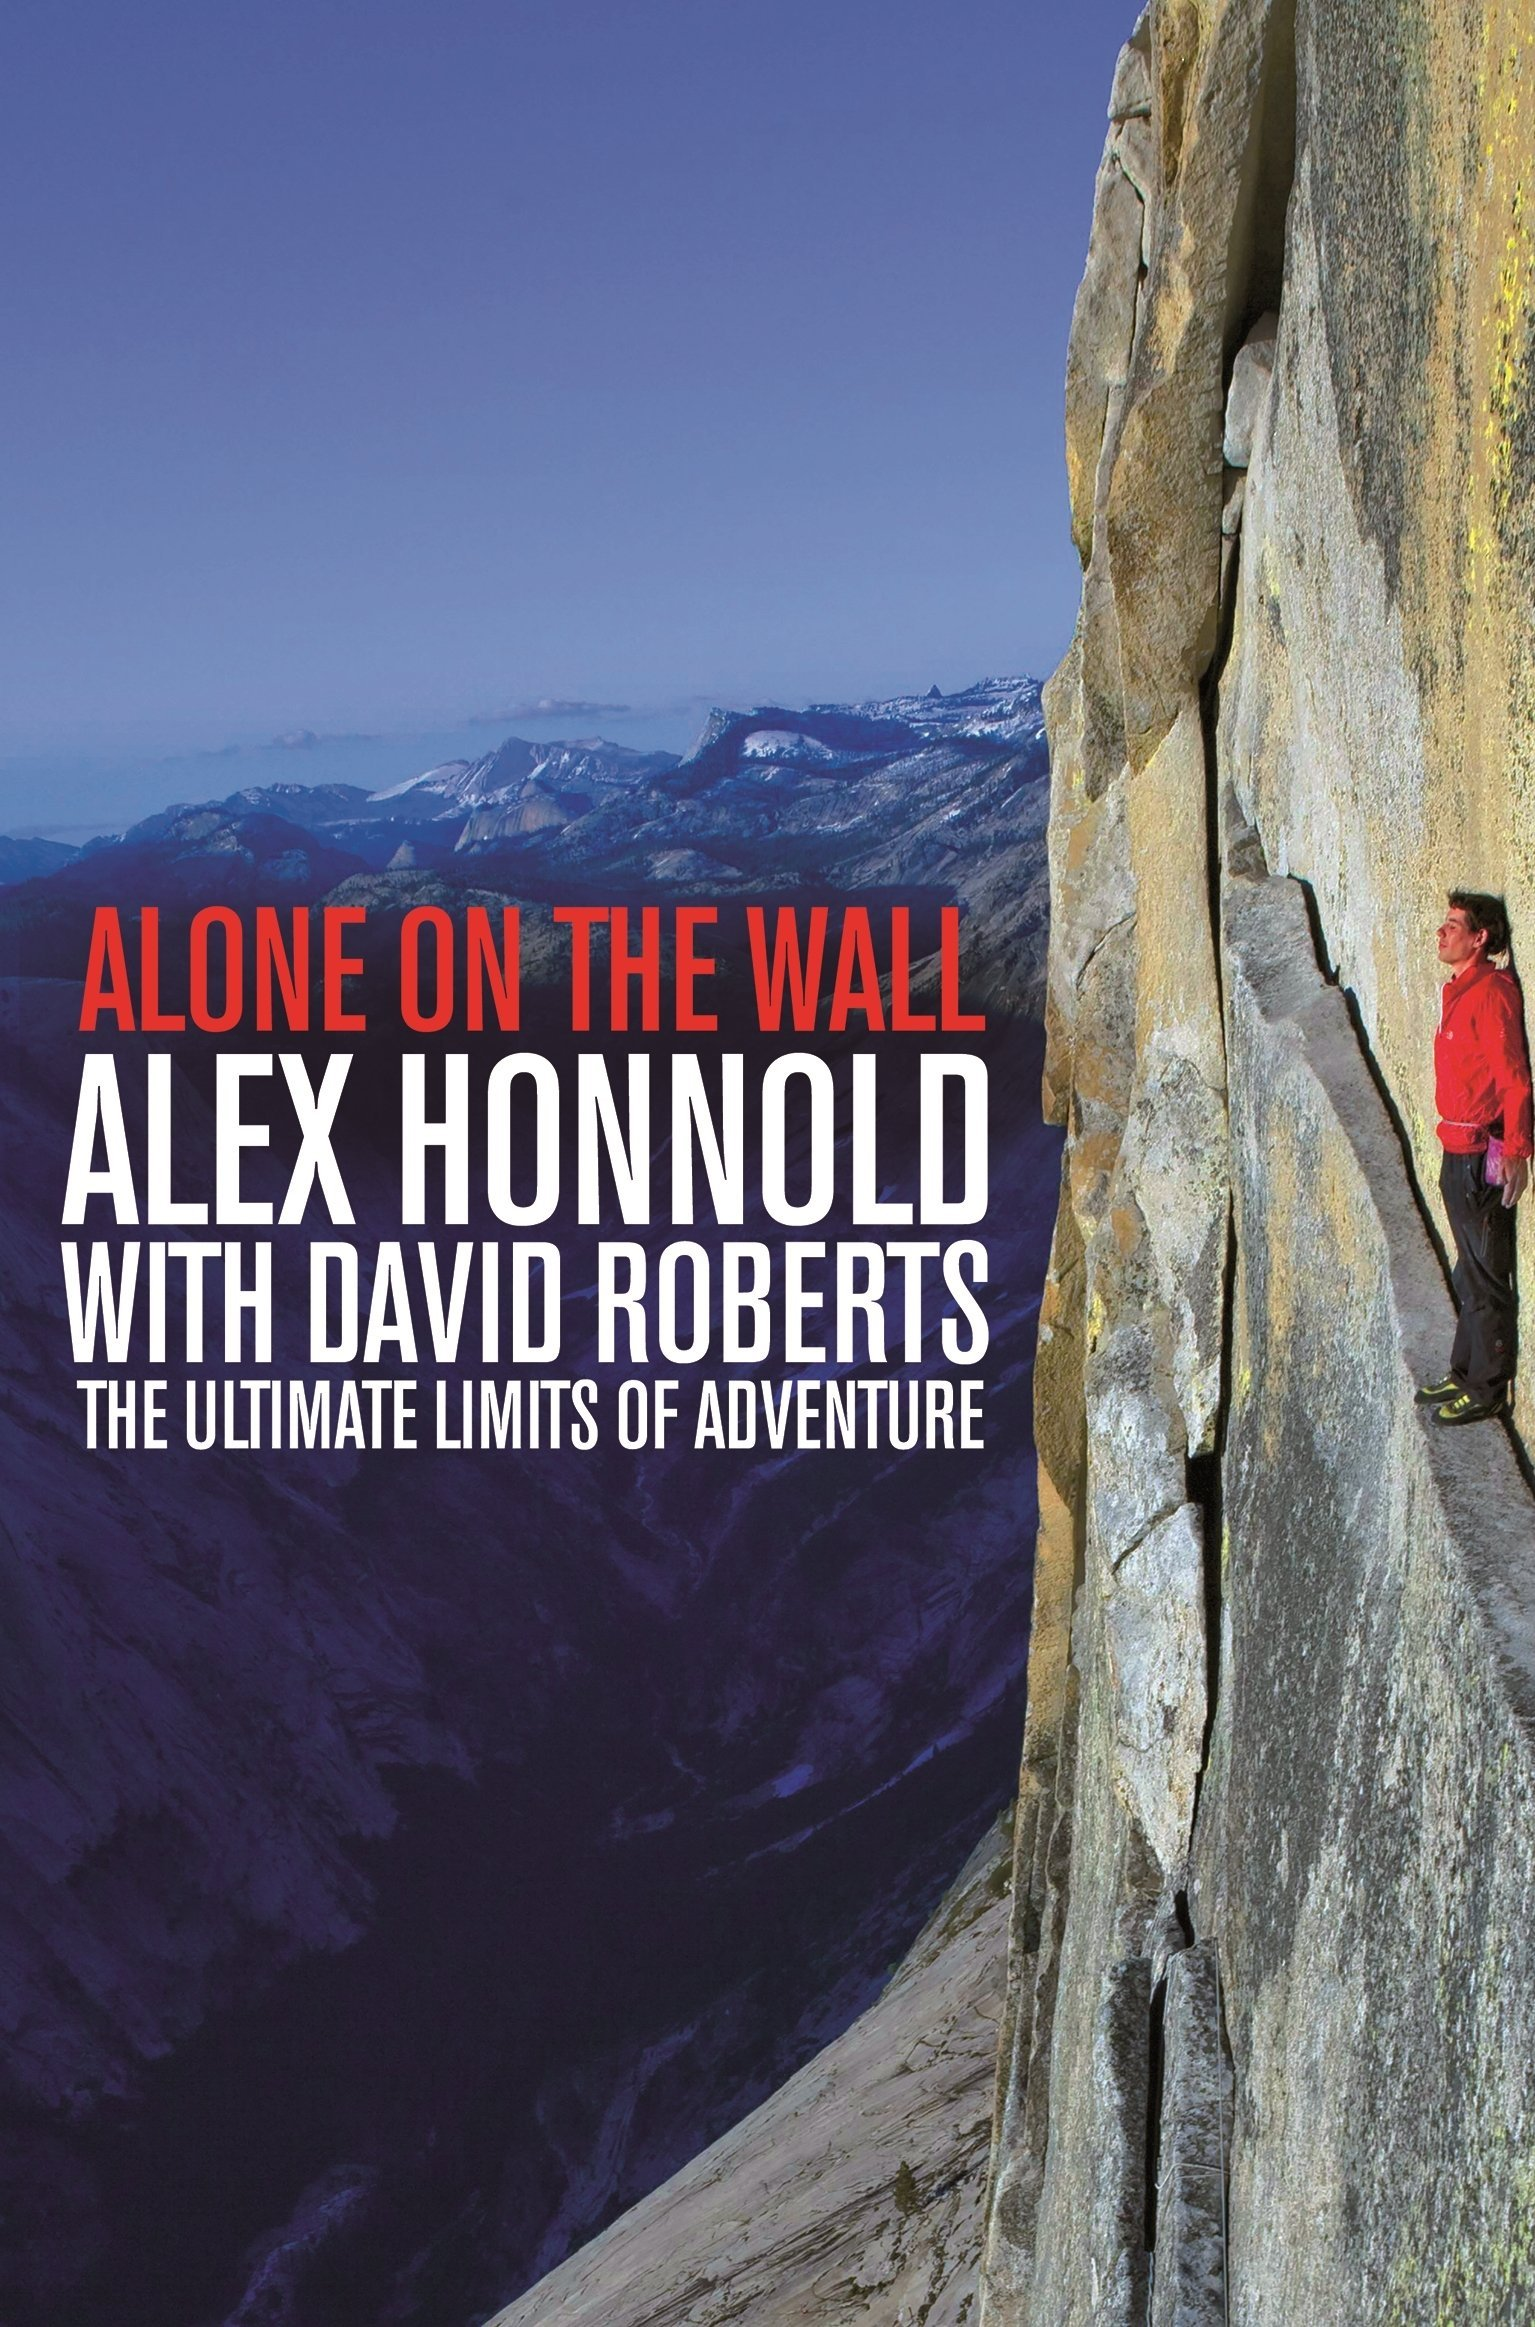 Alone on the Wall 9781447282730 Alex Honnold Pan Macmillan   Klimmen-bergsport Reisinformatie algemeen